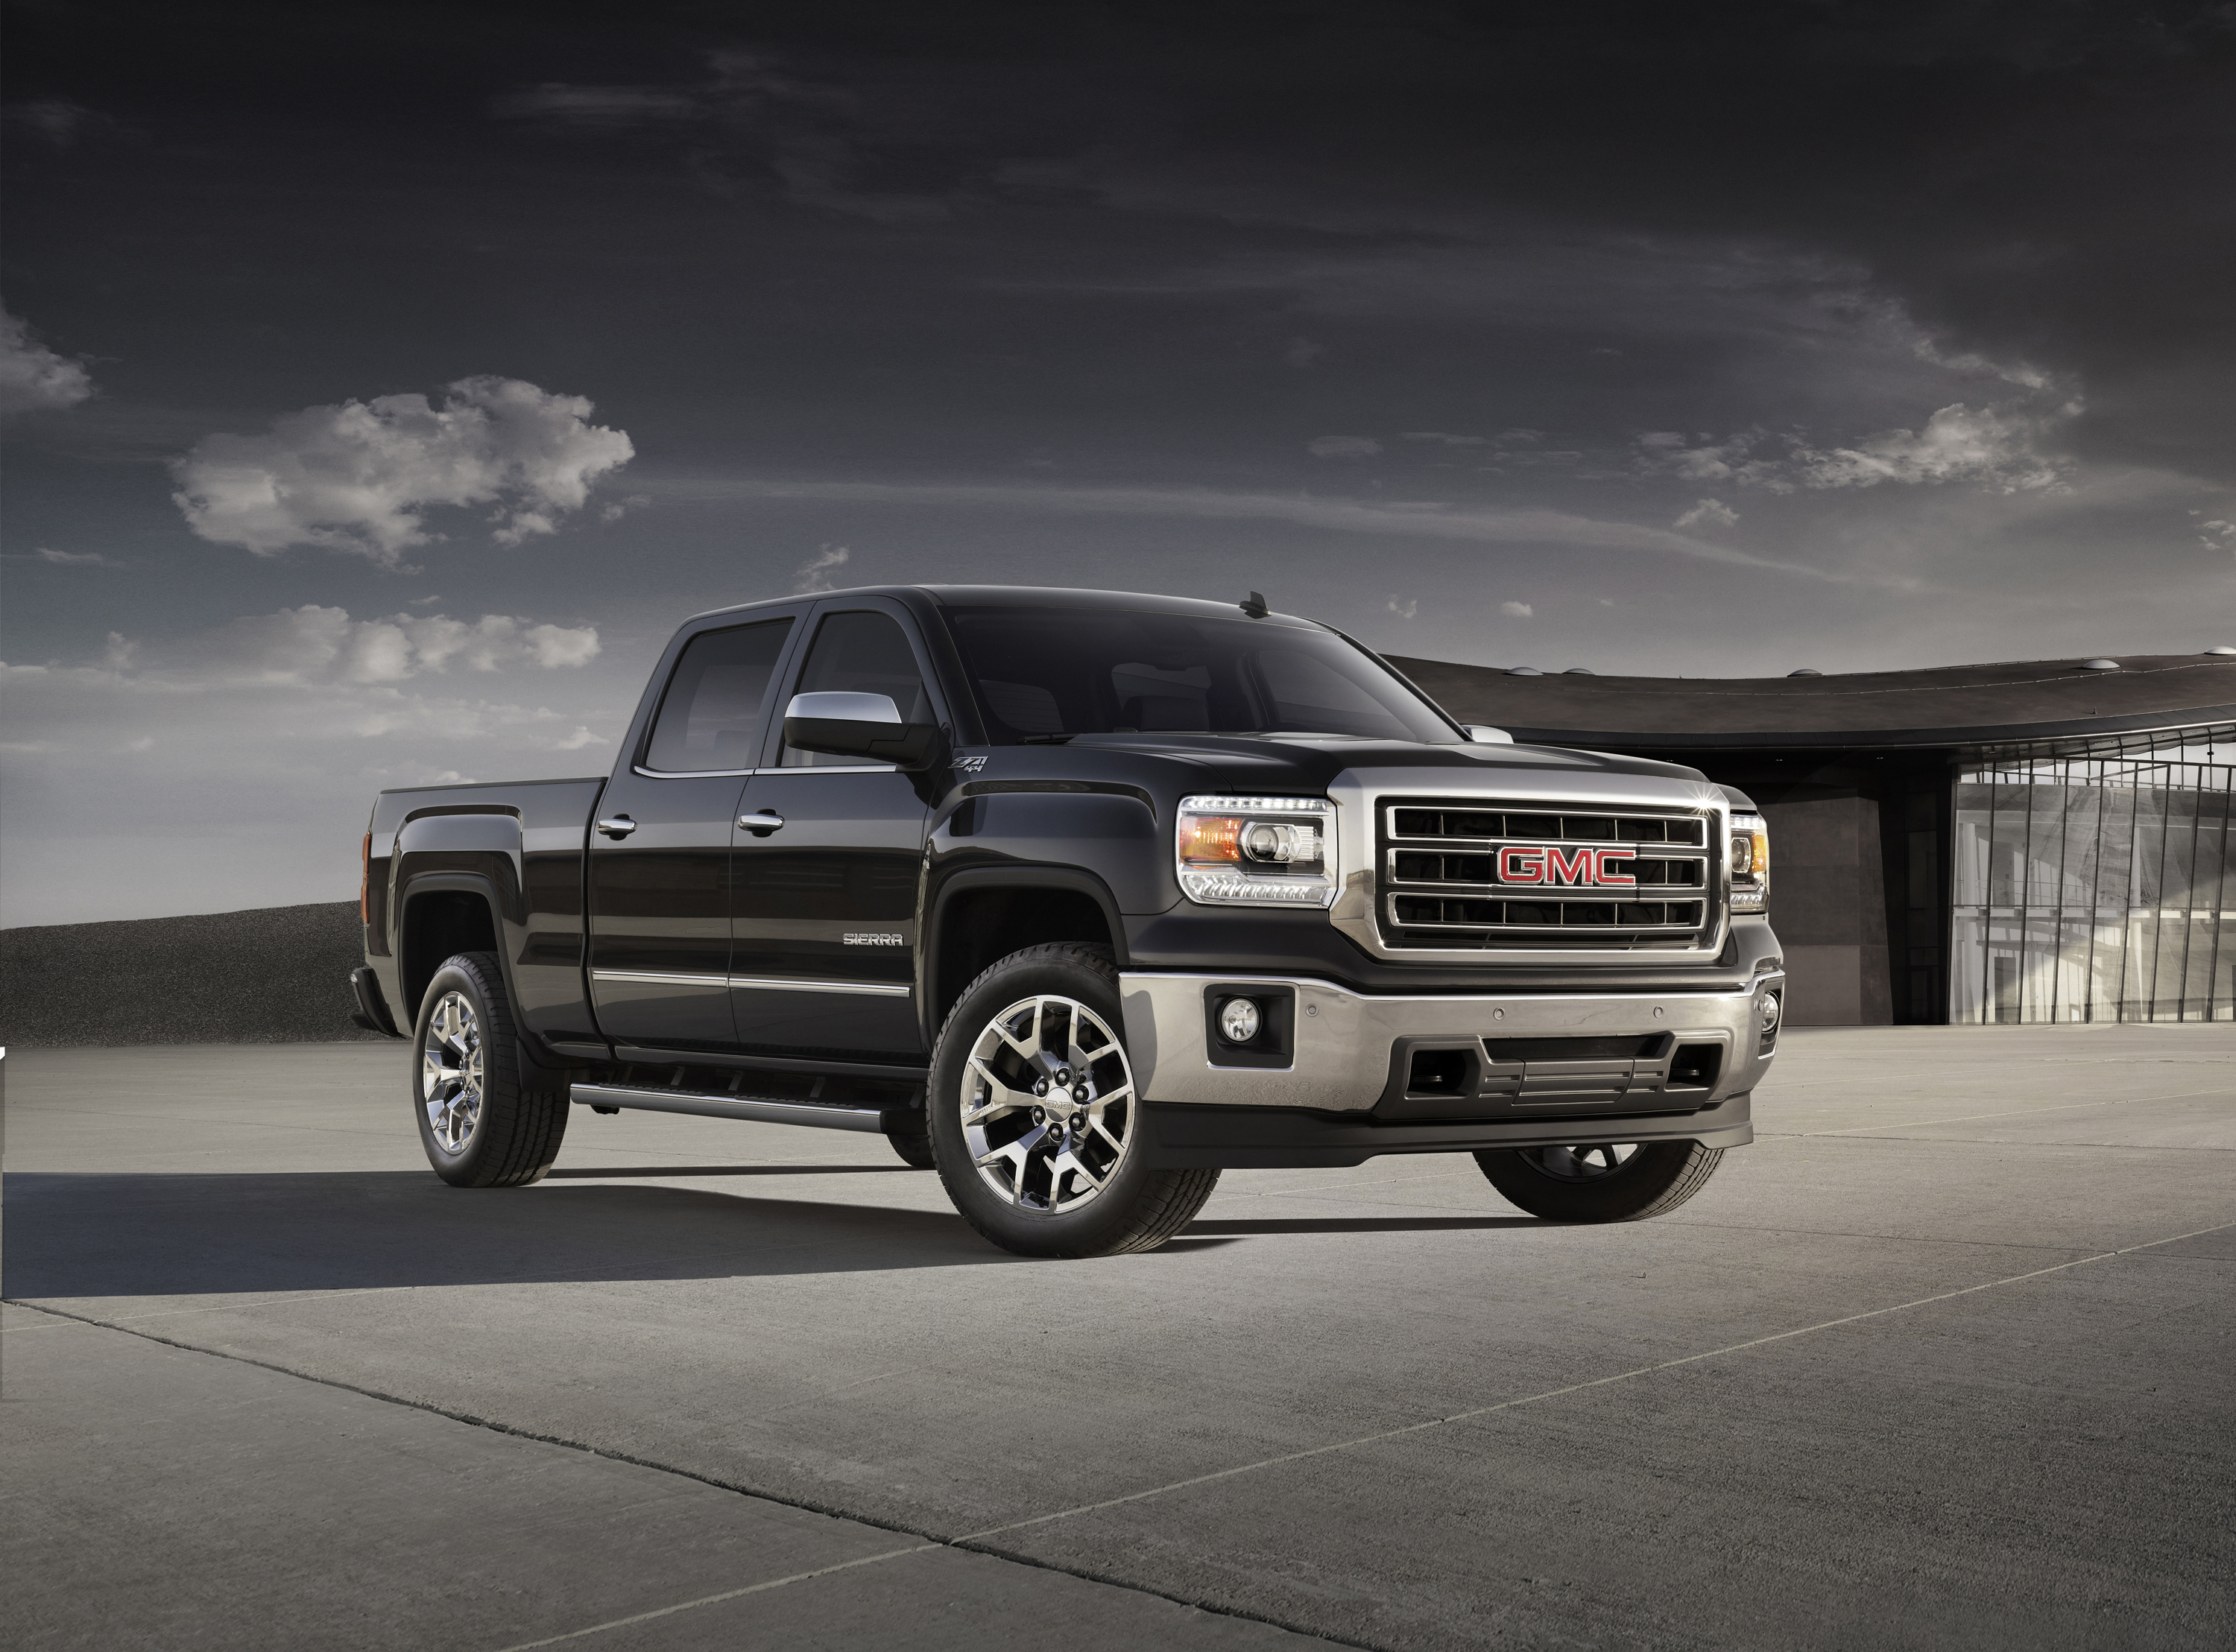 sierra has truck denali crew gmc gallery with ideas design cool hd panel instrument cab stunning on cars